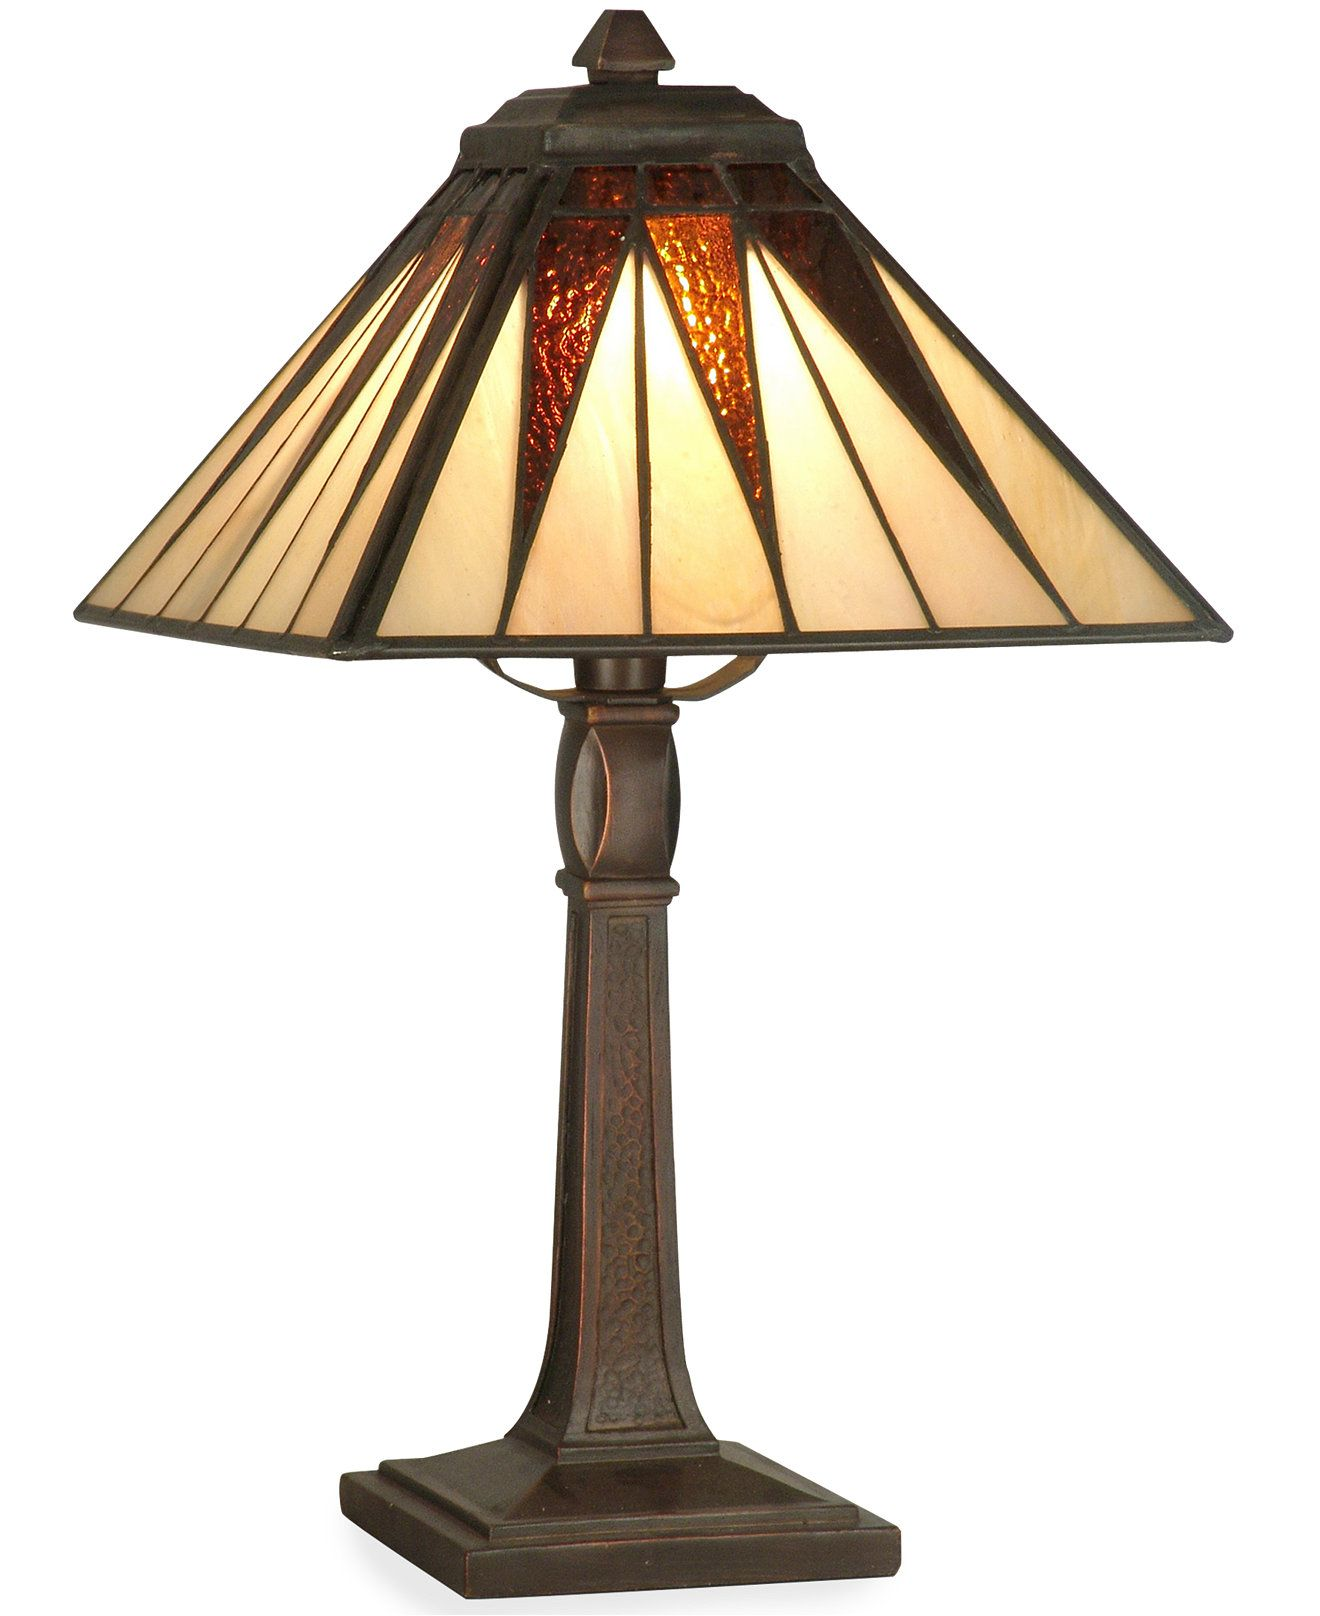 Dale Tiffany Cooper Tiffany Accent Table Lamp Reviews All Lighting Home Decor Macy S Lamp Table Lamp Dale Tiffany